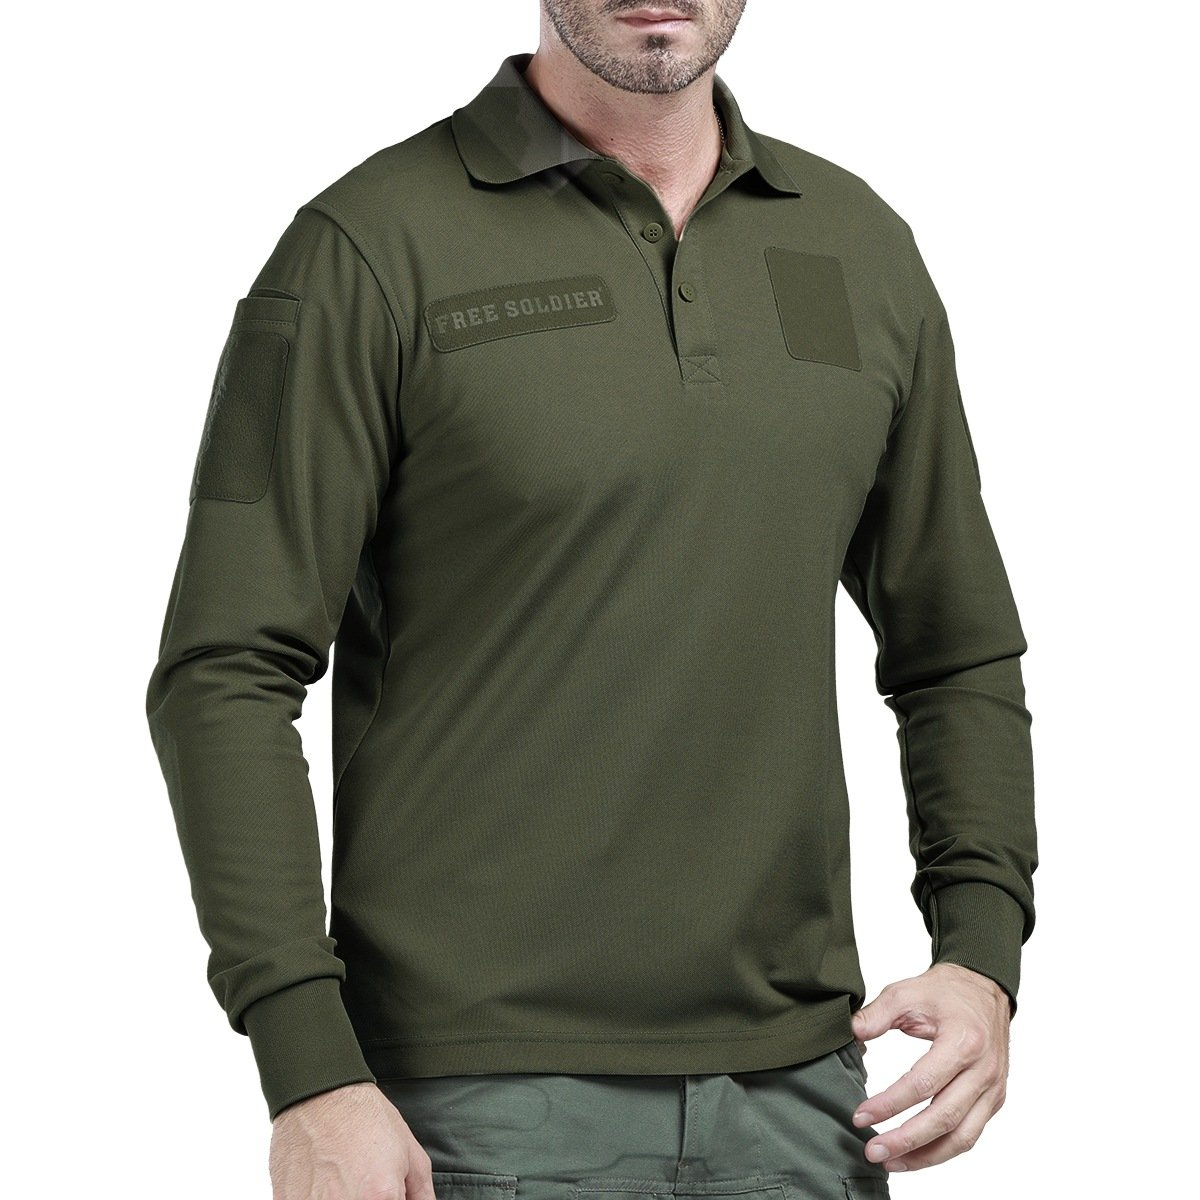 a5bfa8104239 Get Quotations · FREE SOLDIER Men s Outdoor Tactical Long Sleeve Polo Shirts  Golf Shirt